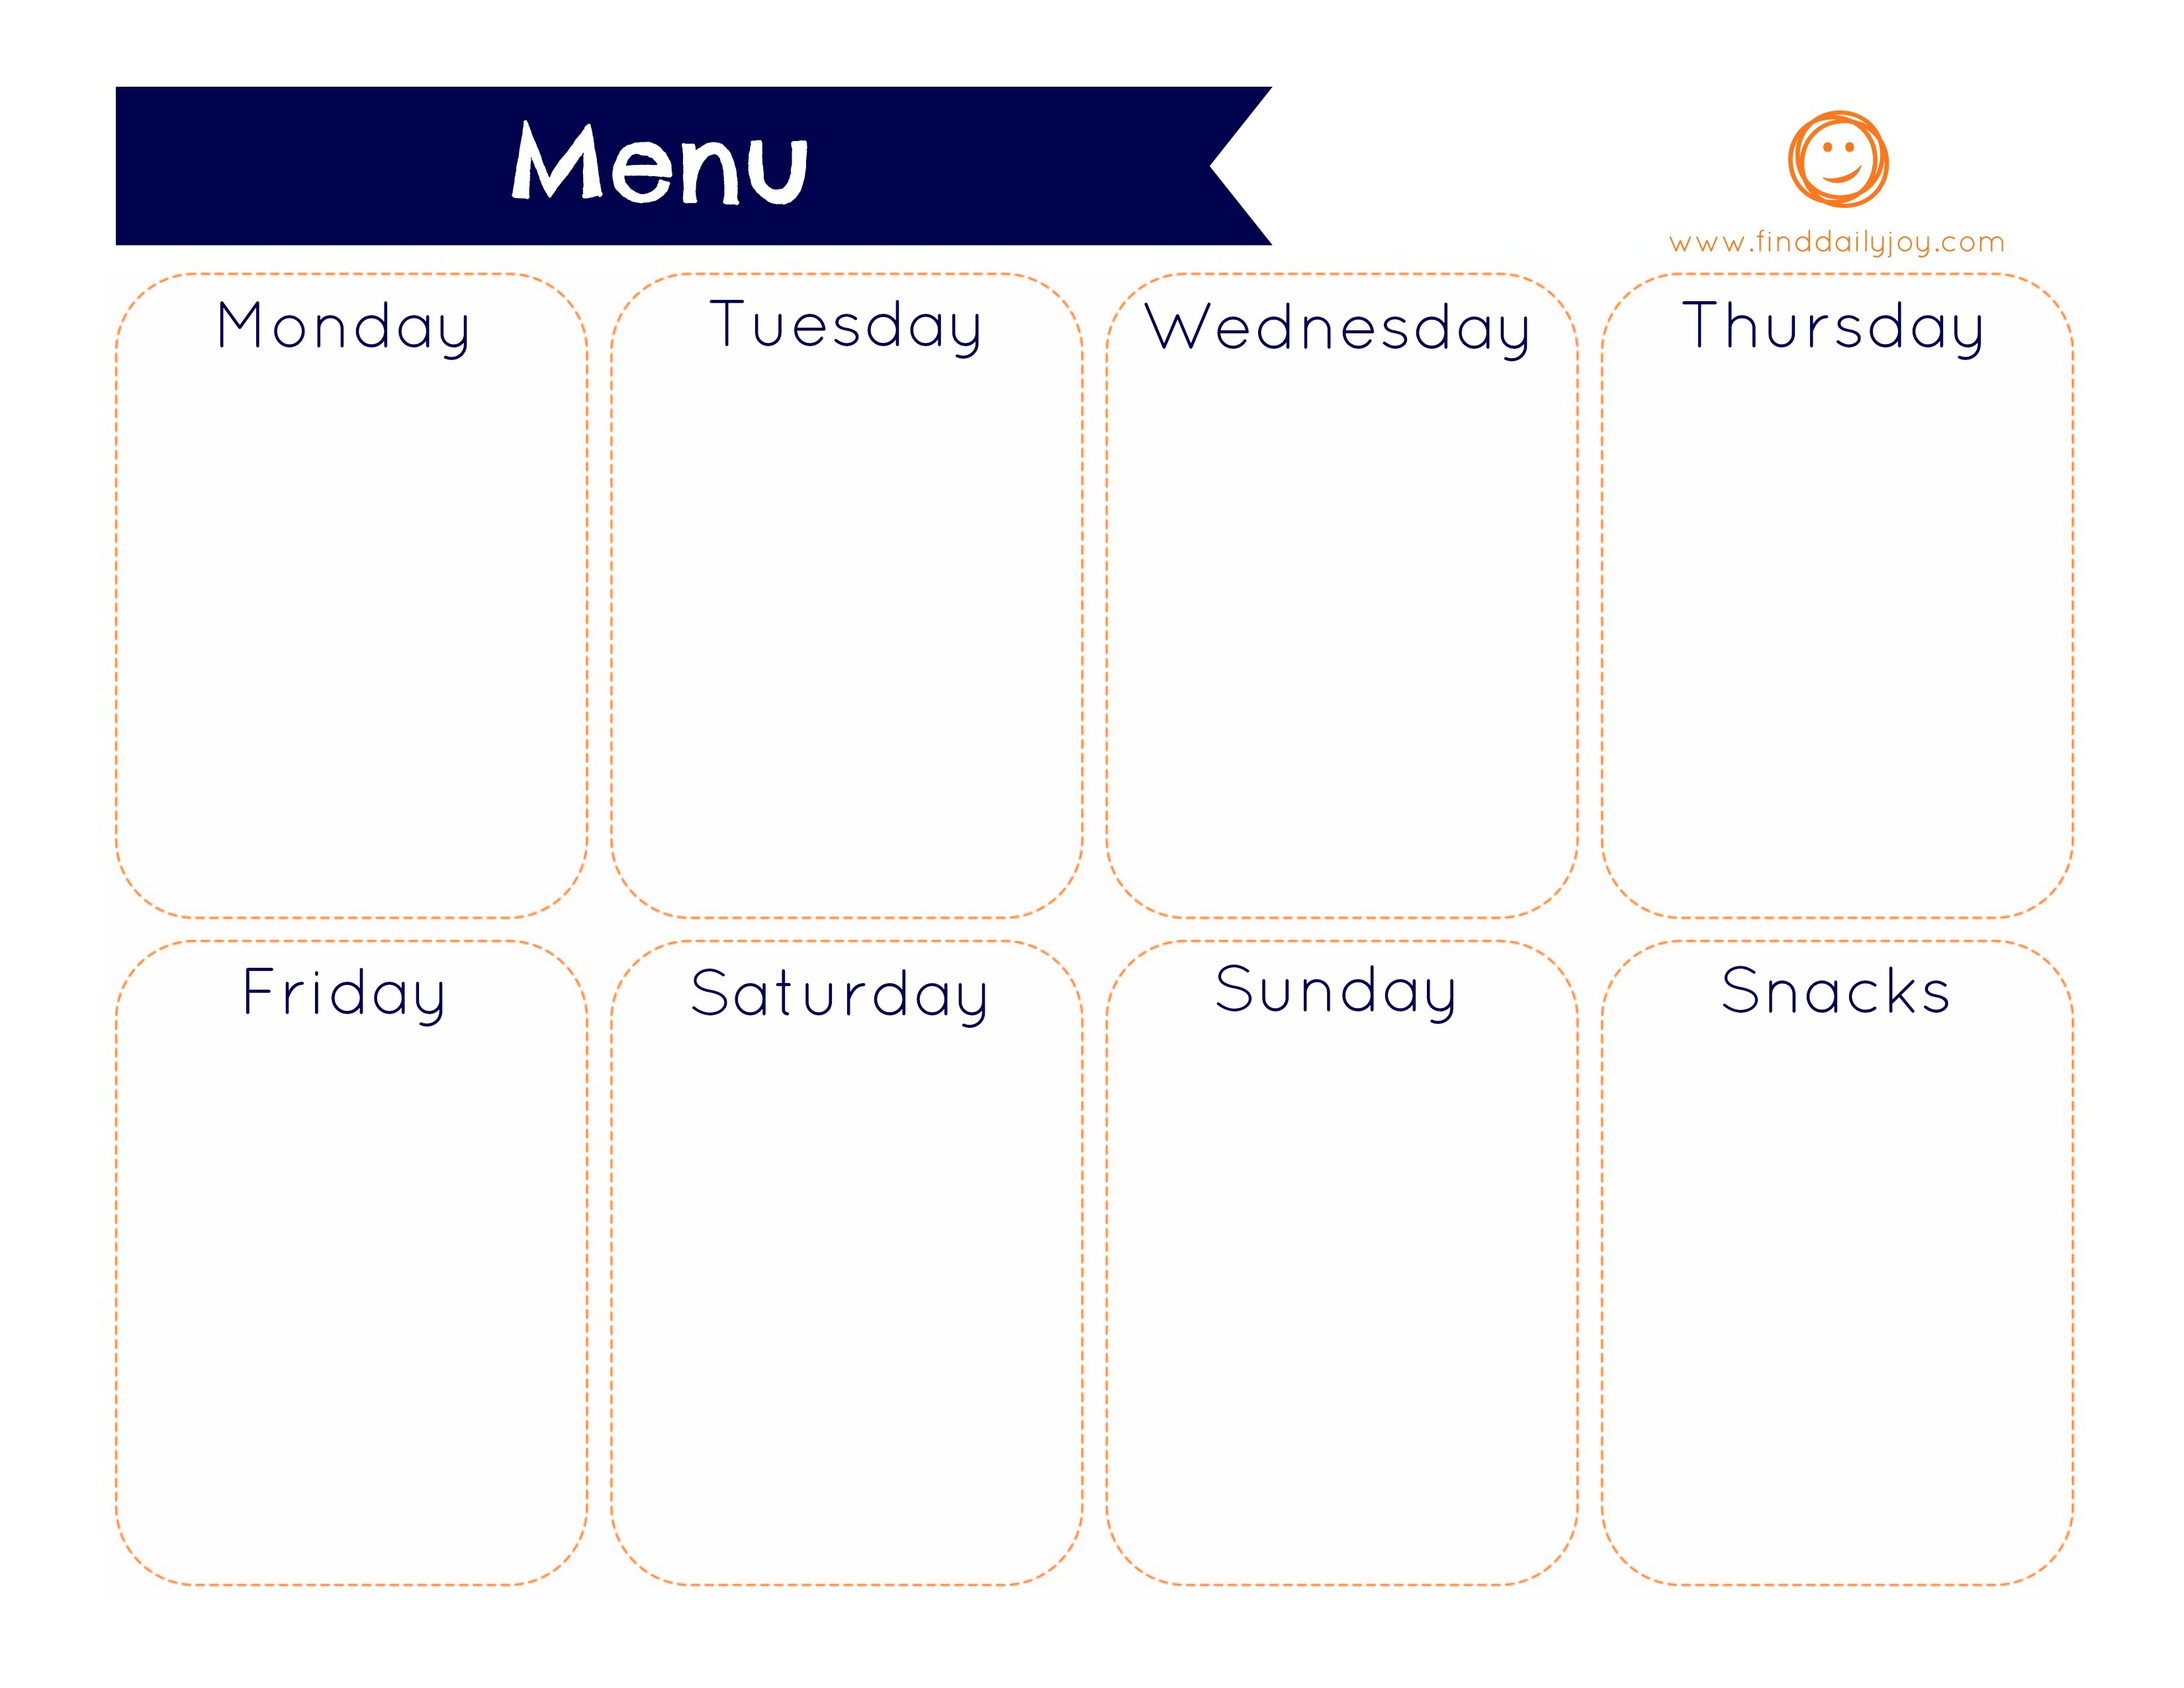 This is an image of Légend Menu Planning Print Out